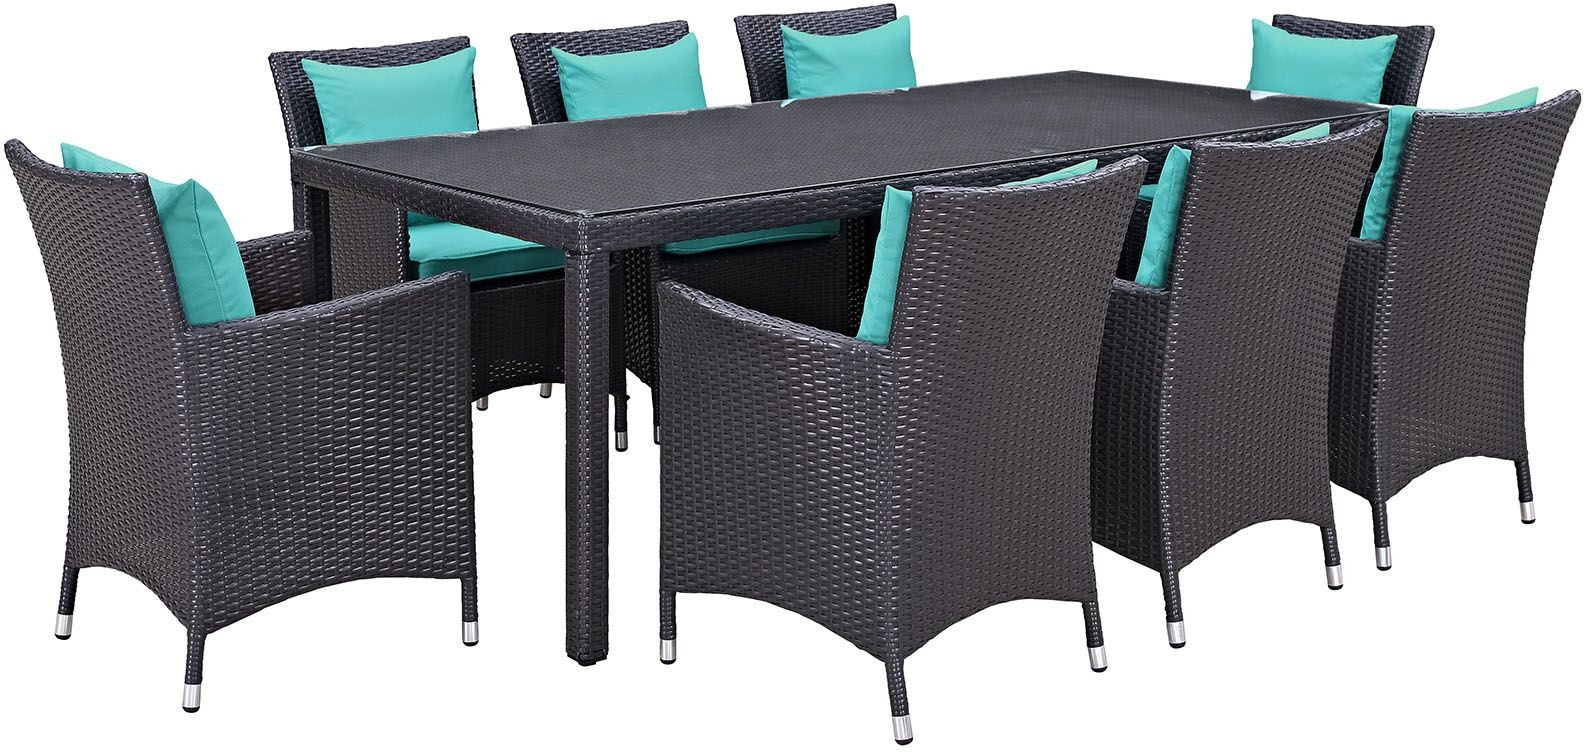 Convene Espresso Turquoise 9 Piece Outdoor Patio Dining Set from Renegade